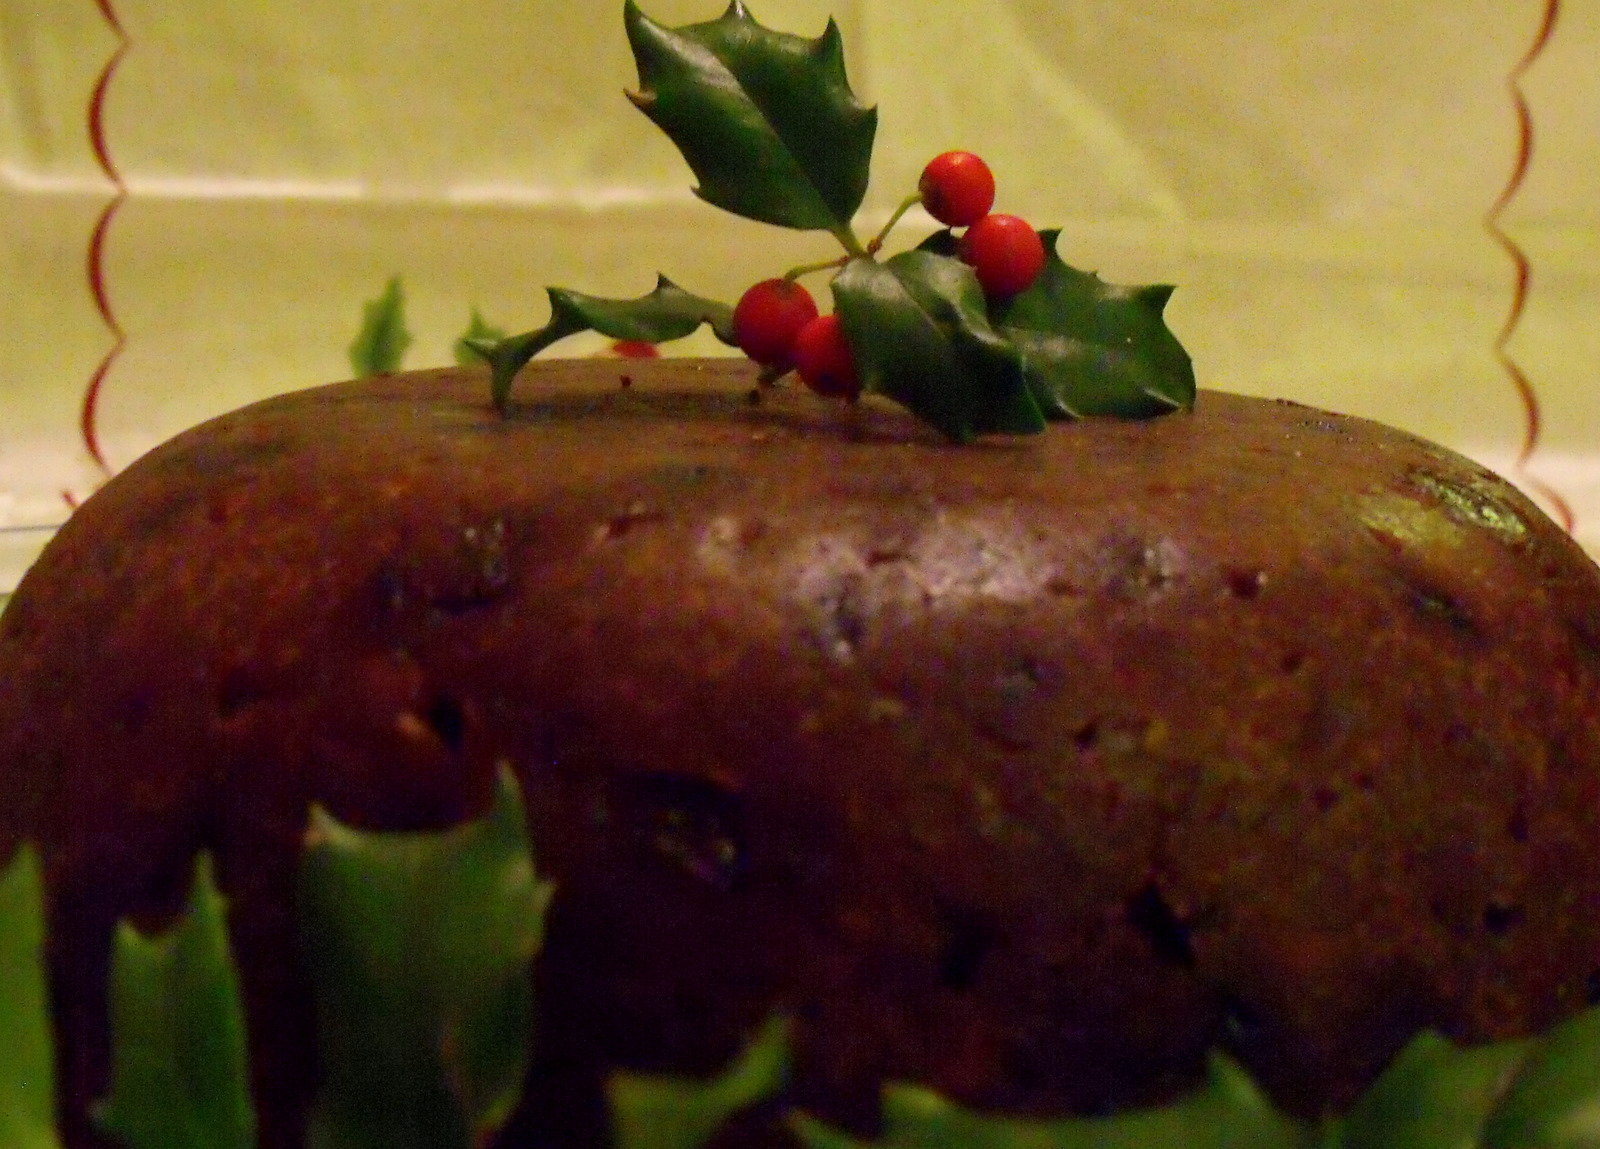 Plum pudding with holly